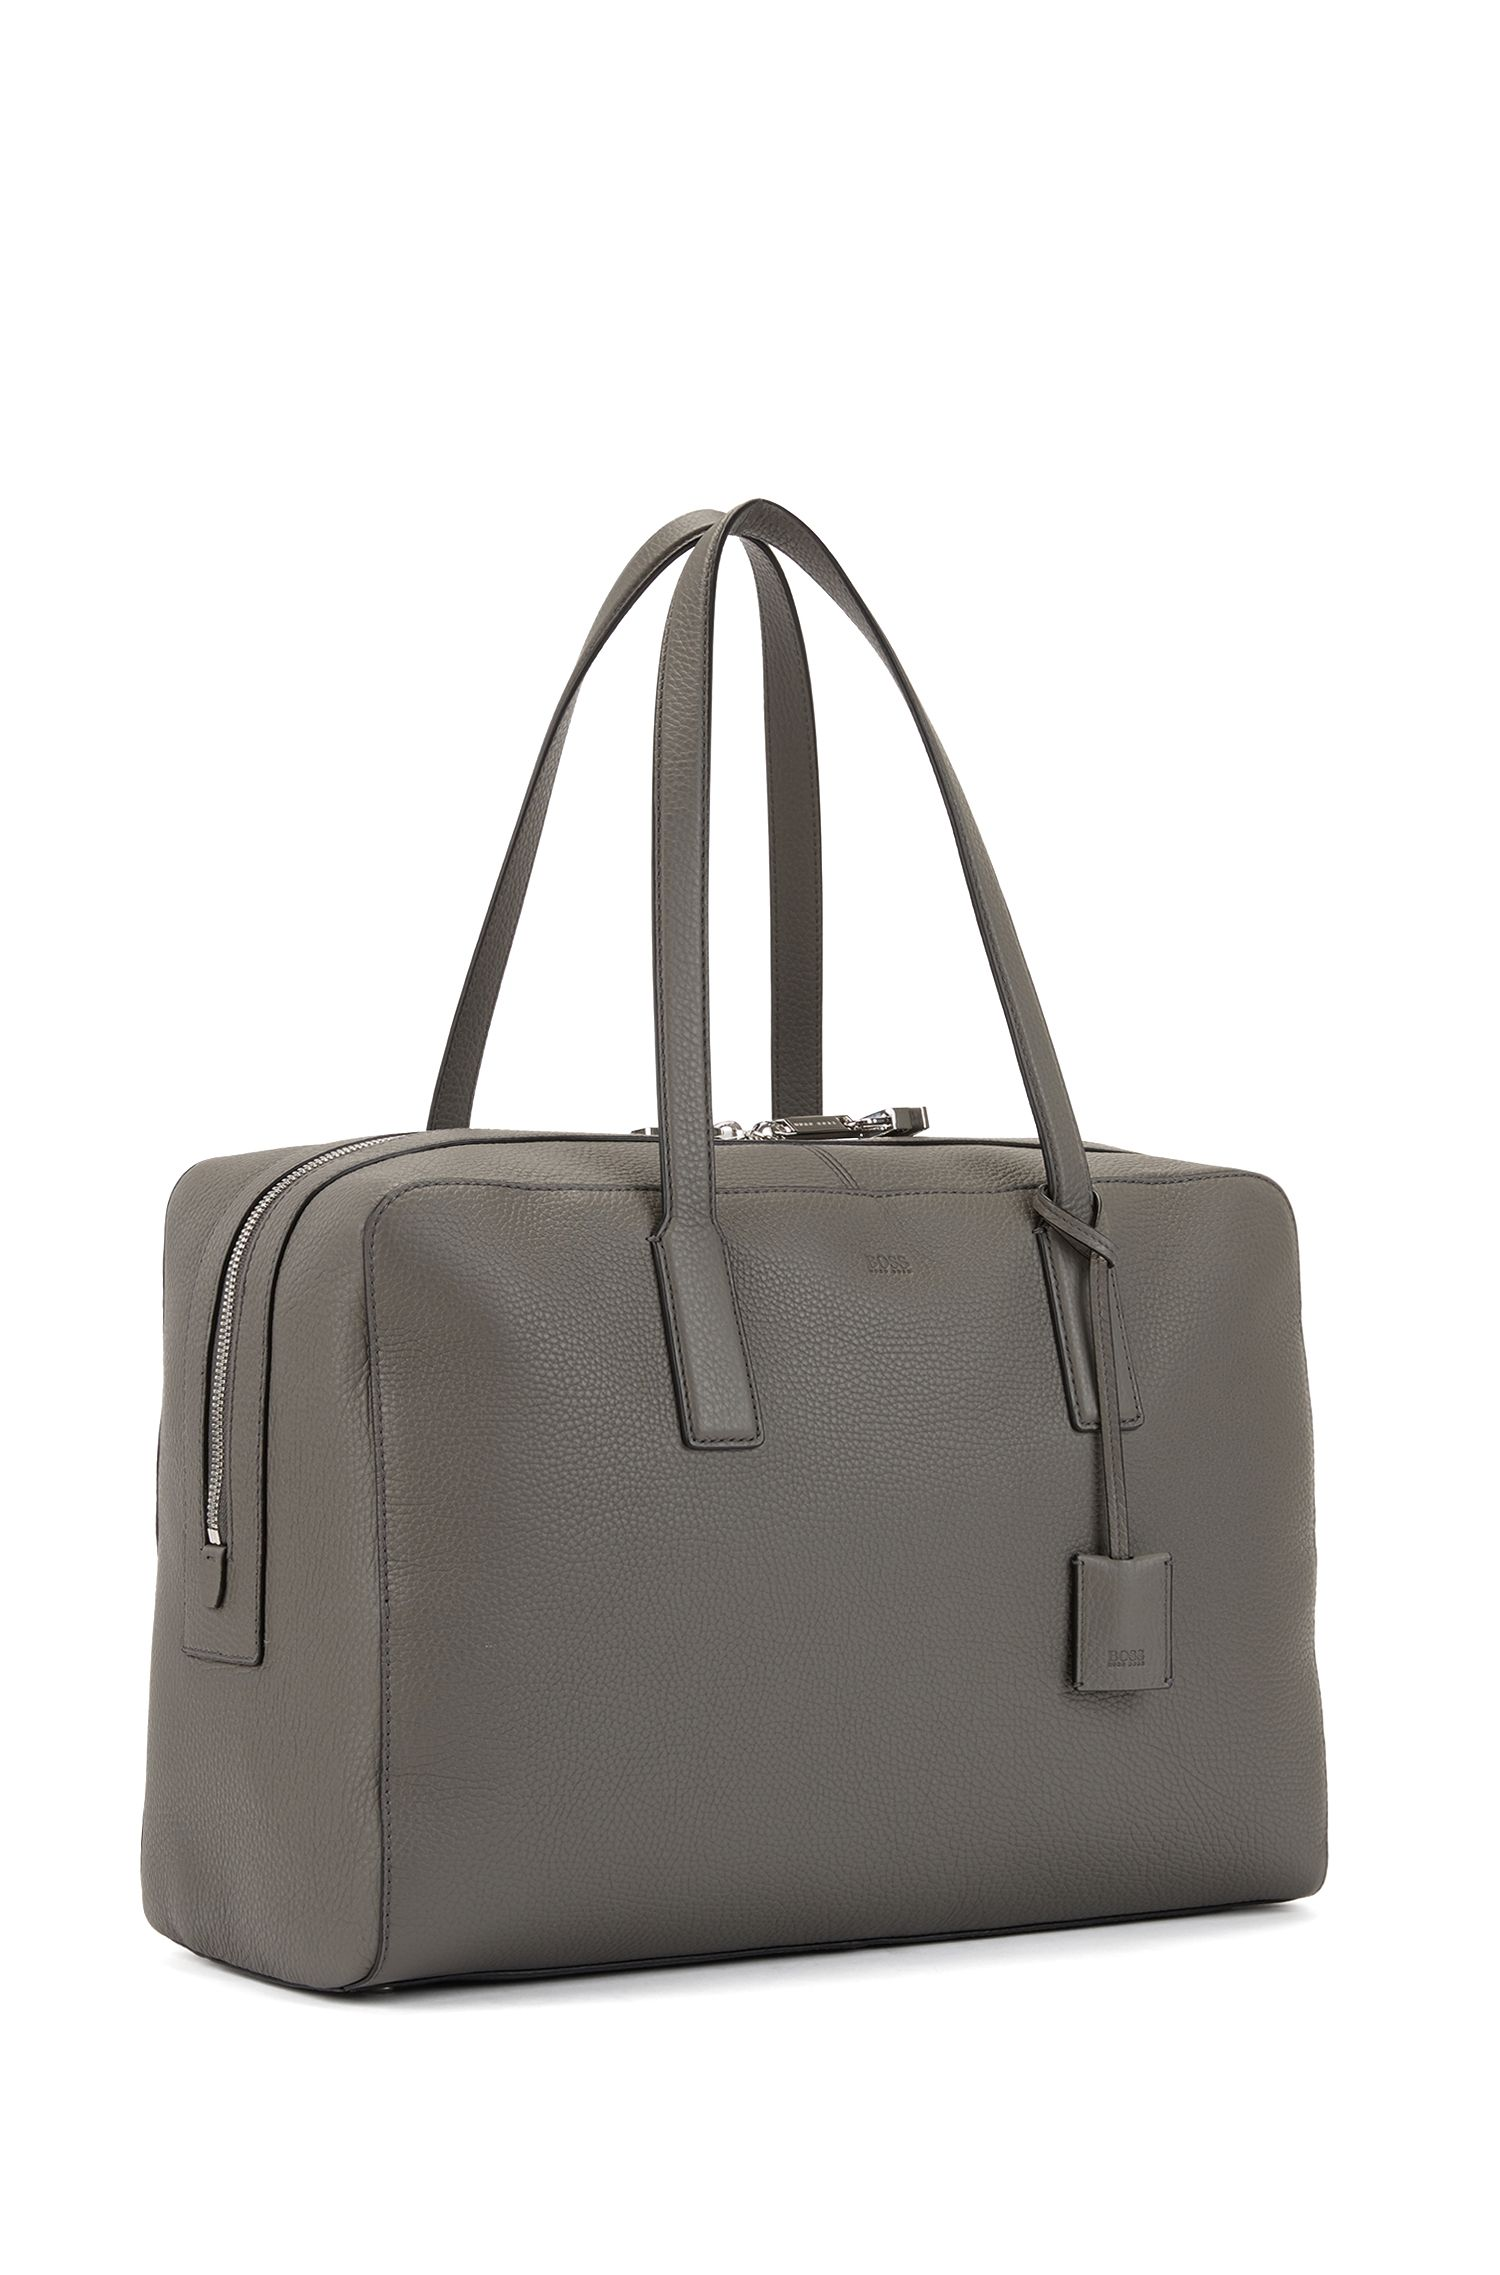 Holdall in grainy Italian leather with key lock